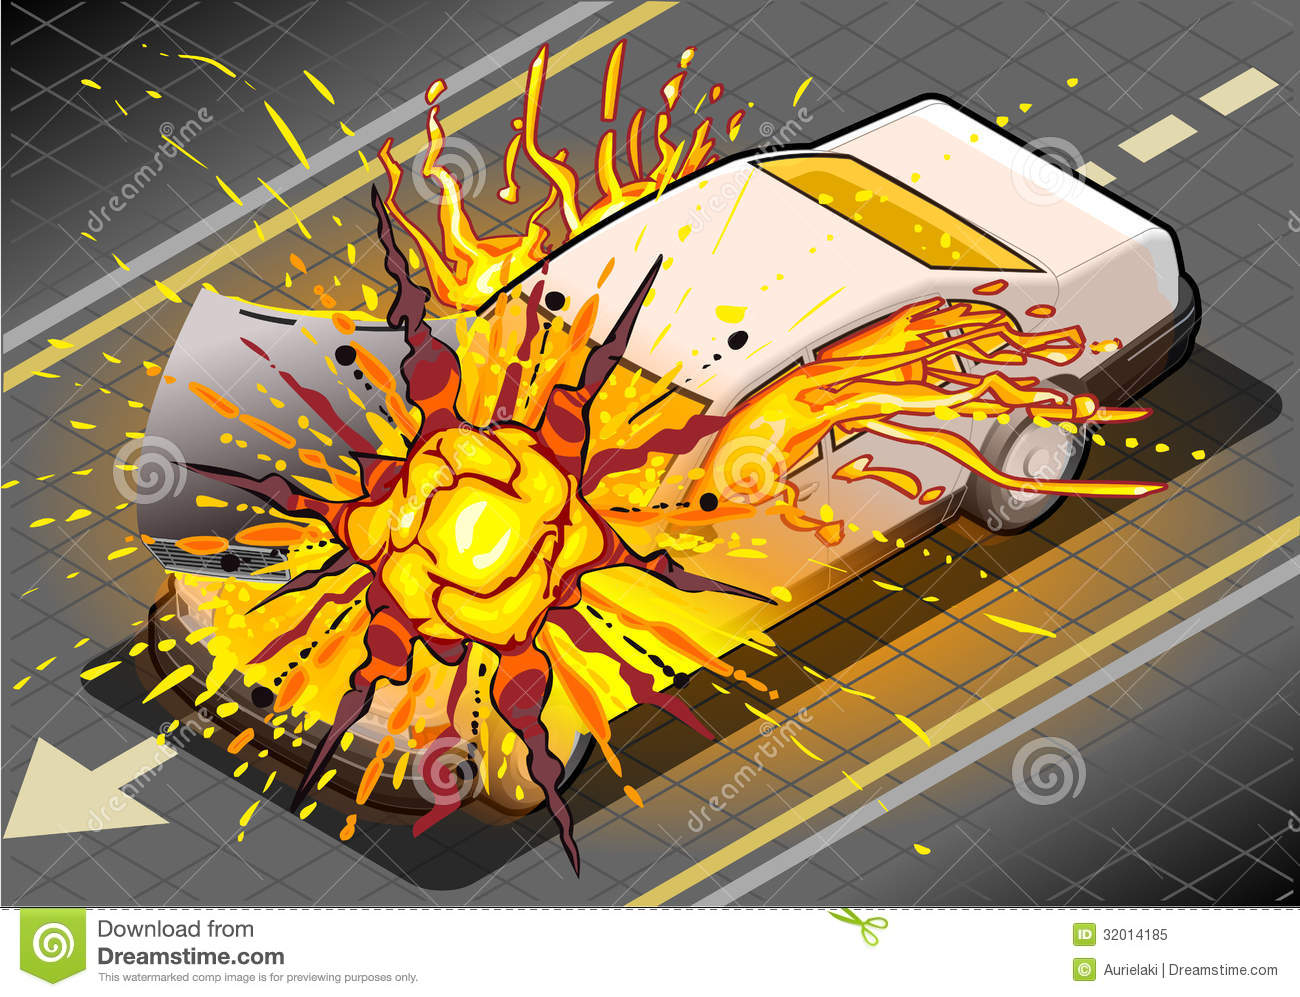 Isometric White Car In Explosion In Front View Royalty